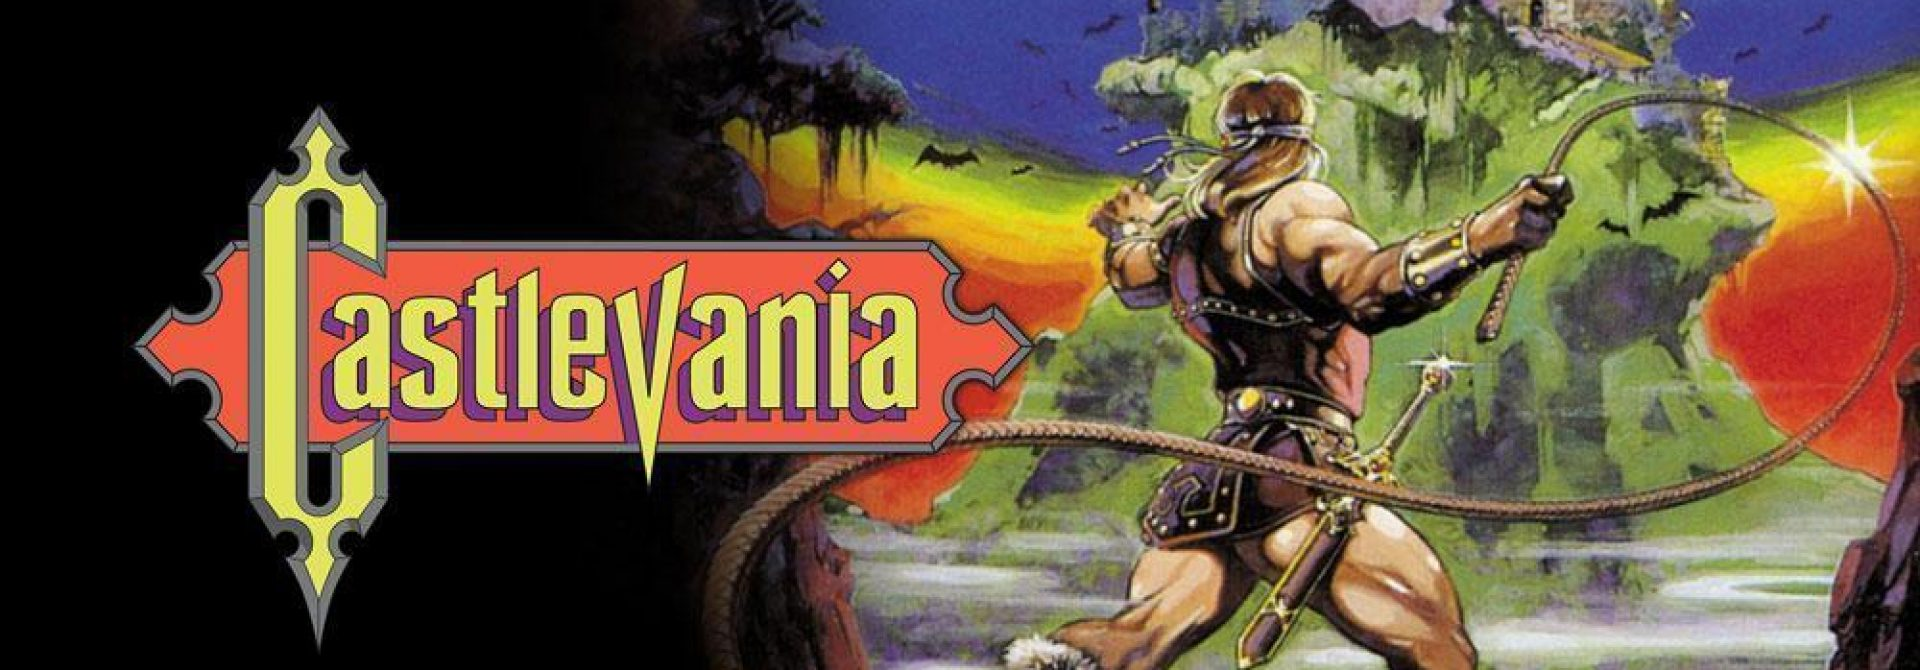 Castlevania TV Series Confirmed For Netflix